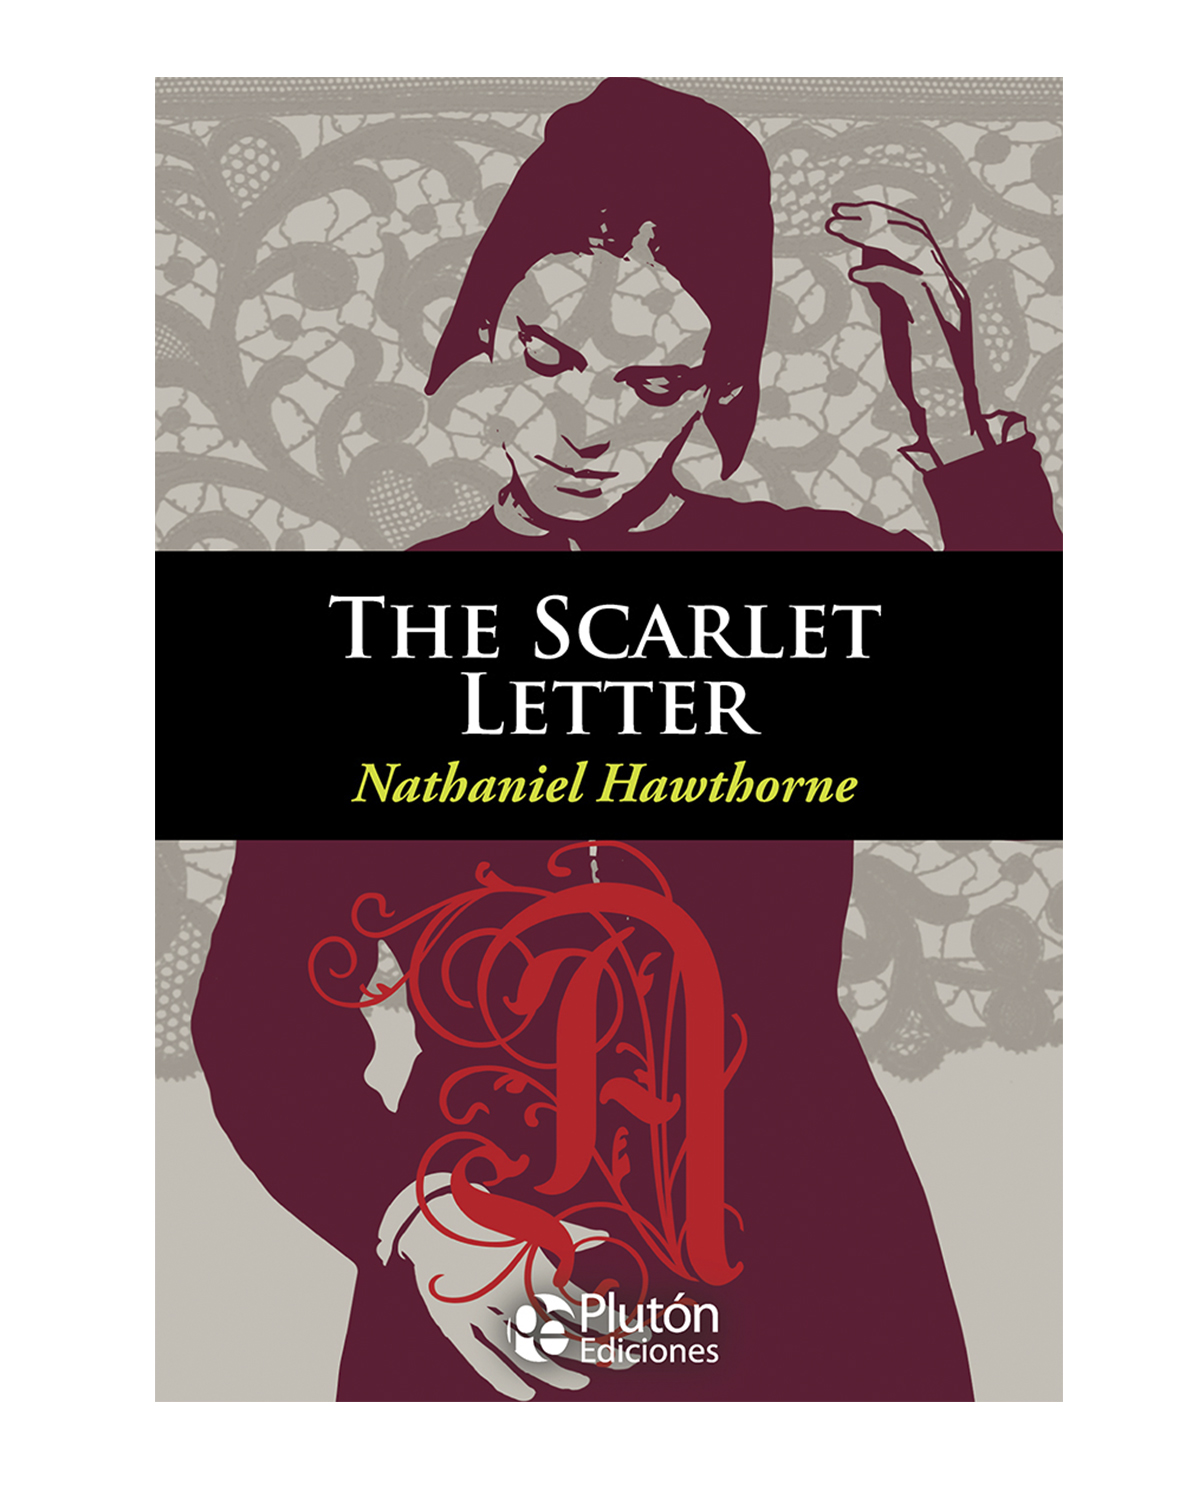 revenge as portrayed in nathaniel hawthornes the scarlet letter The scarlet letter, written by nathaniel hawthorne, contains many instances of characters sinning from hesters adultery to mistress hibbins witchcraft, sin is a major theme of the novel two main characters stick out when considering who sins the most in the novel: arthur dimmesdale and roger chillingworth.